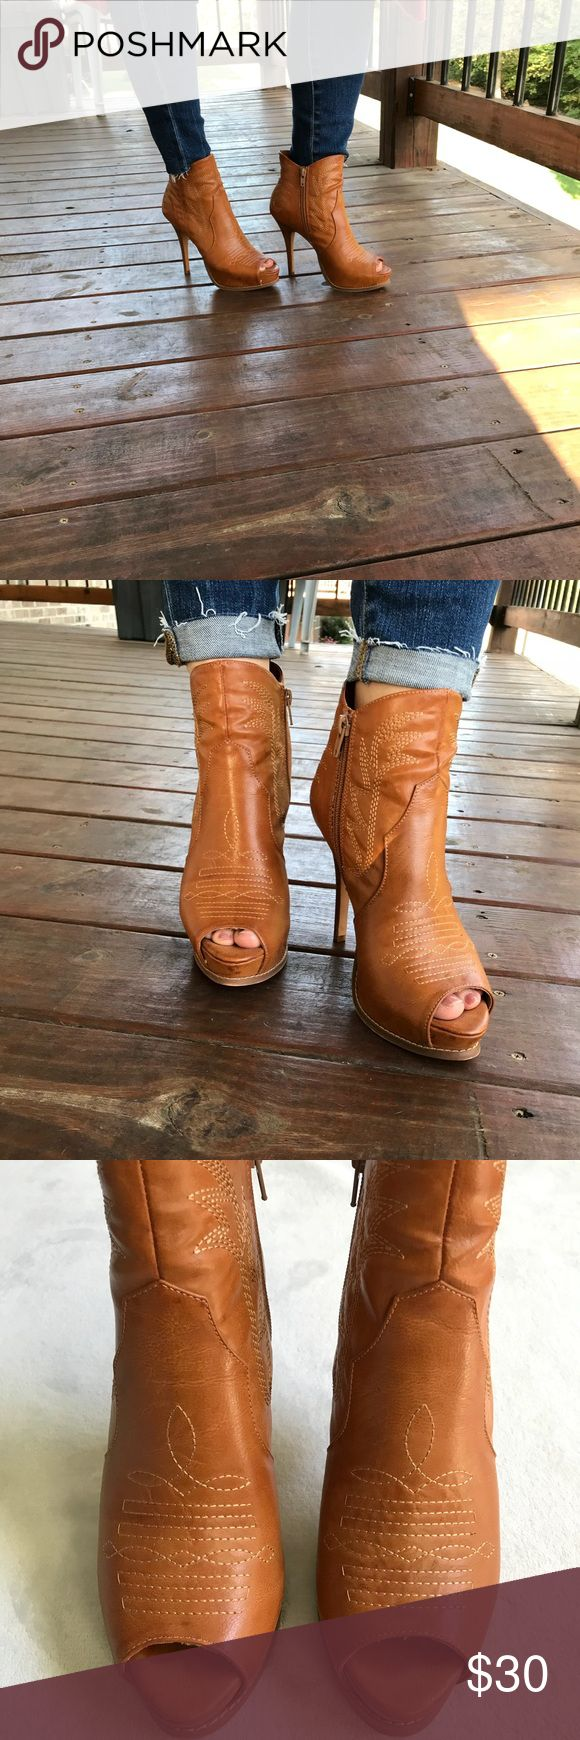 Miranda Lambert Escapade boots Great condition open toe boots. Super cute and they have great support, you don't wobble in these shoes. 5 inch heels. Small discoloration shown in last picture but that's it. Side zipper. Miranda Lambert Shoes Heeled Boots